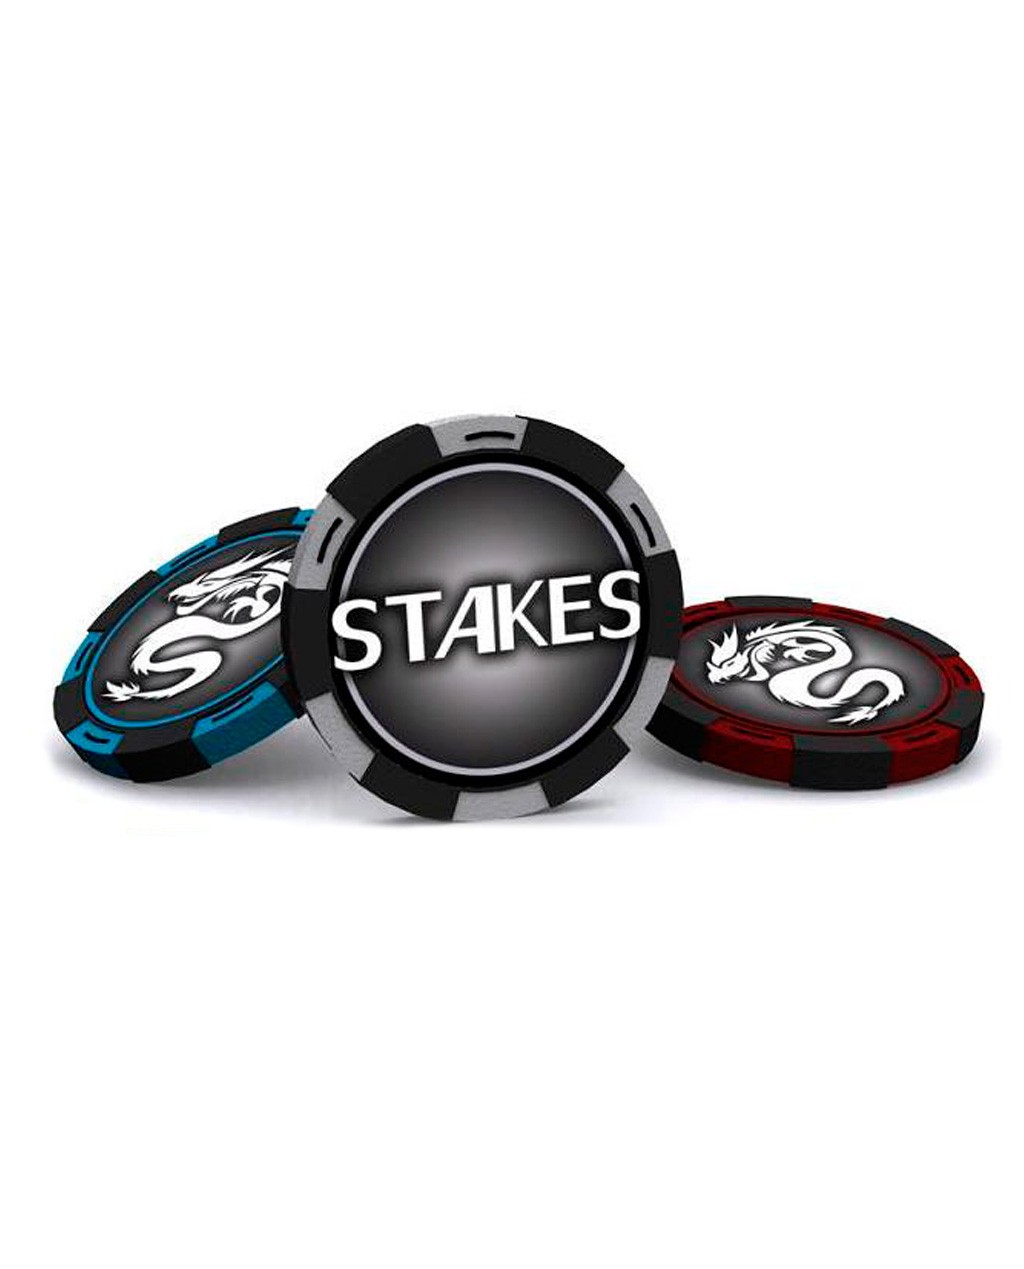 200pcs stakes clay poker chips set - Clay Poker Chips